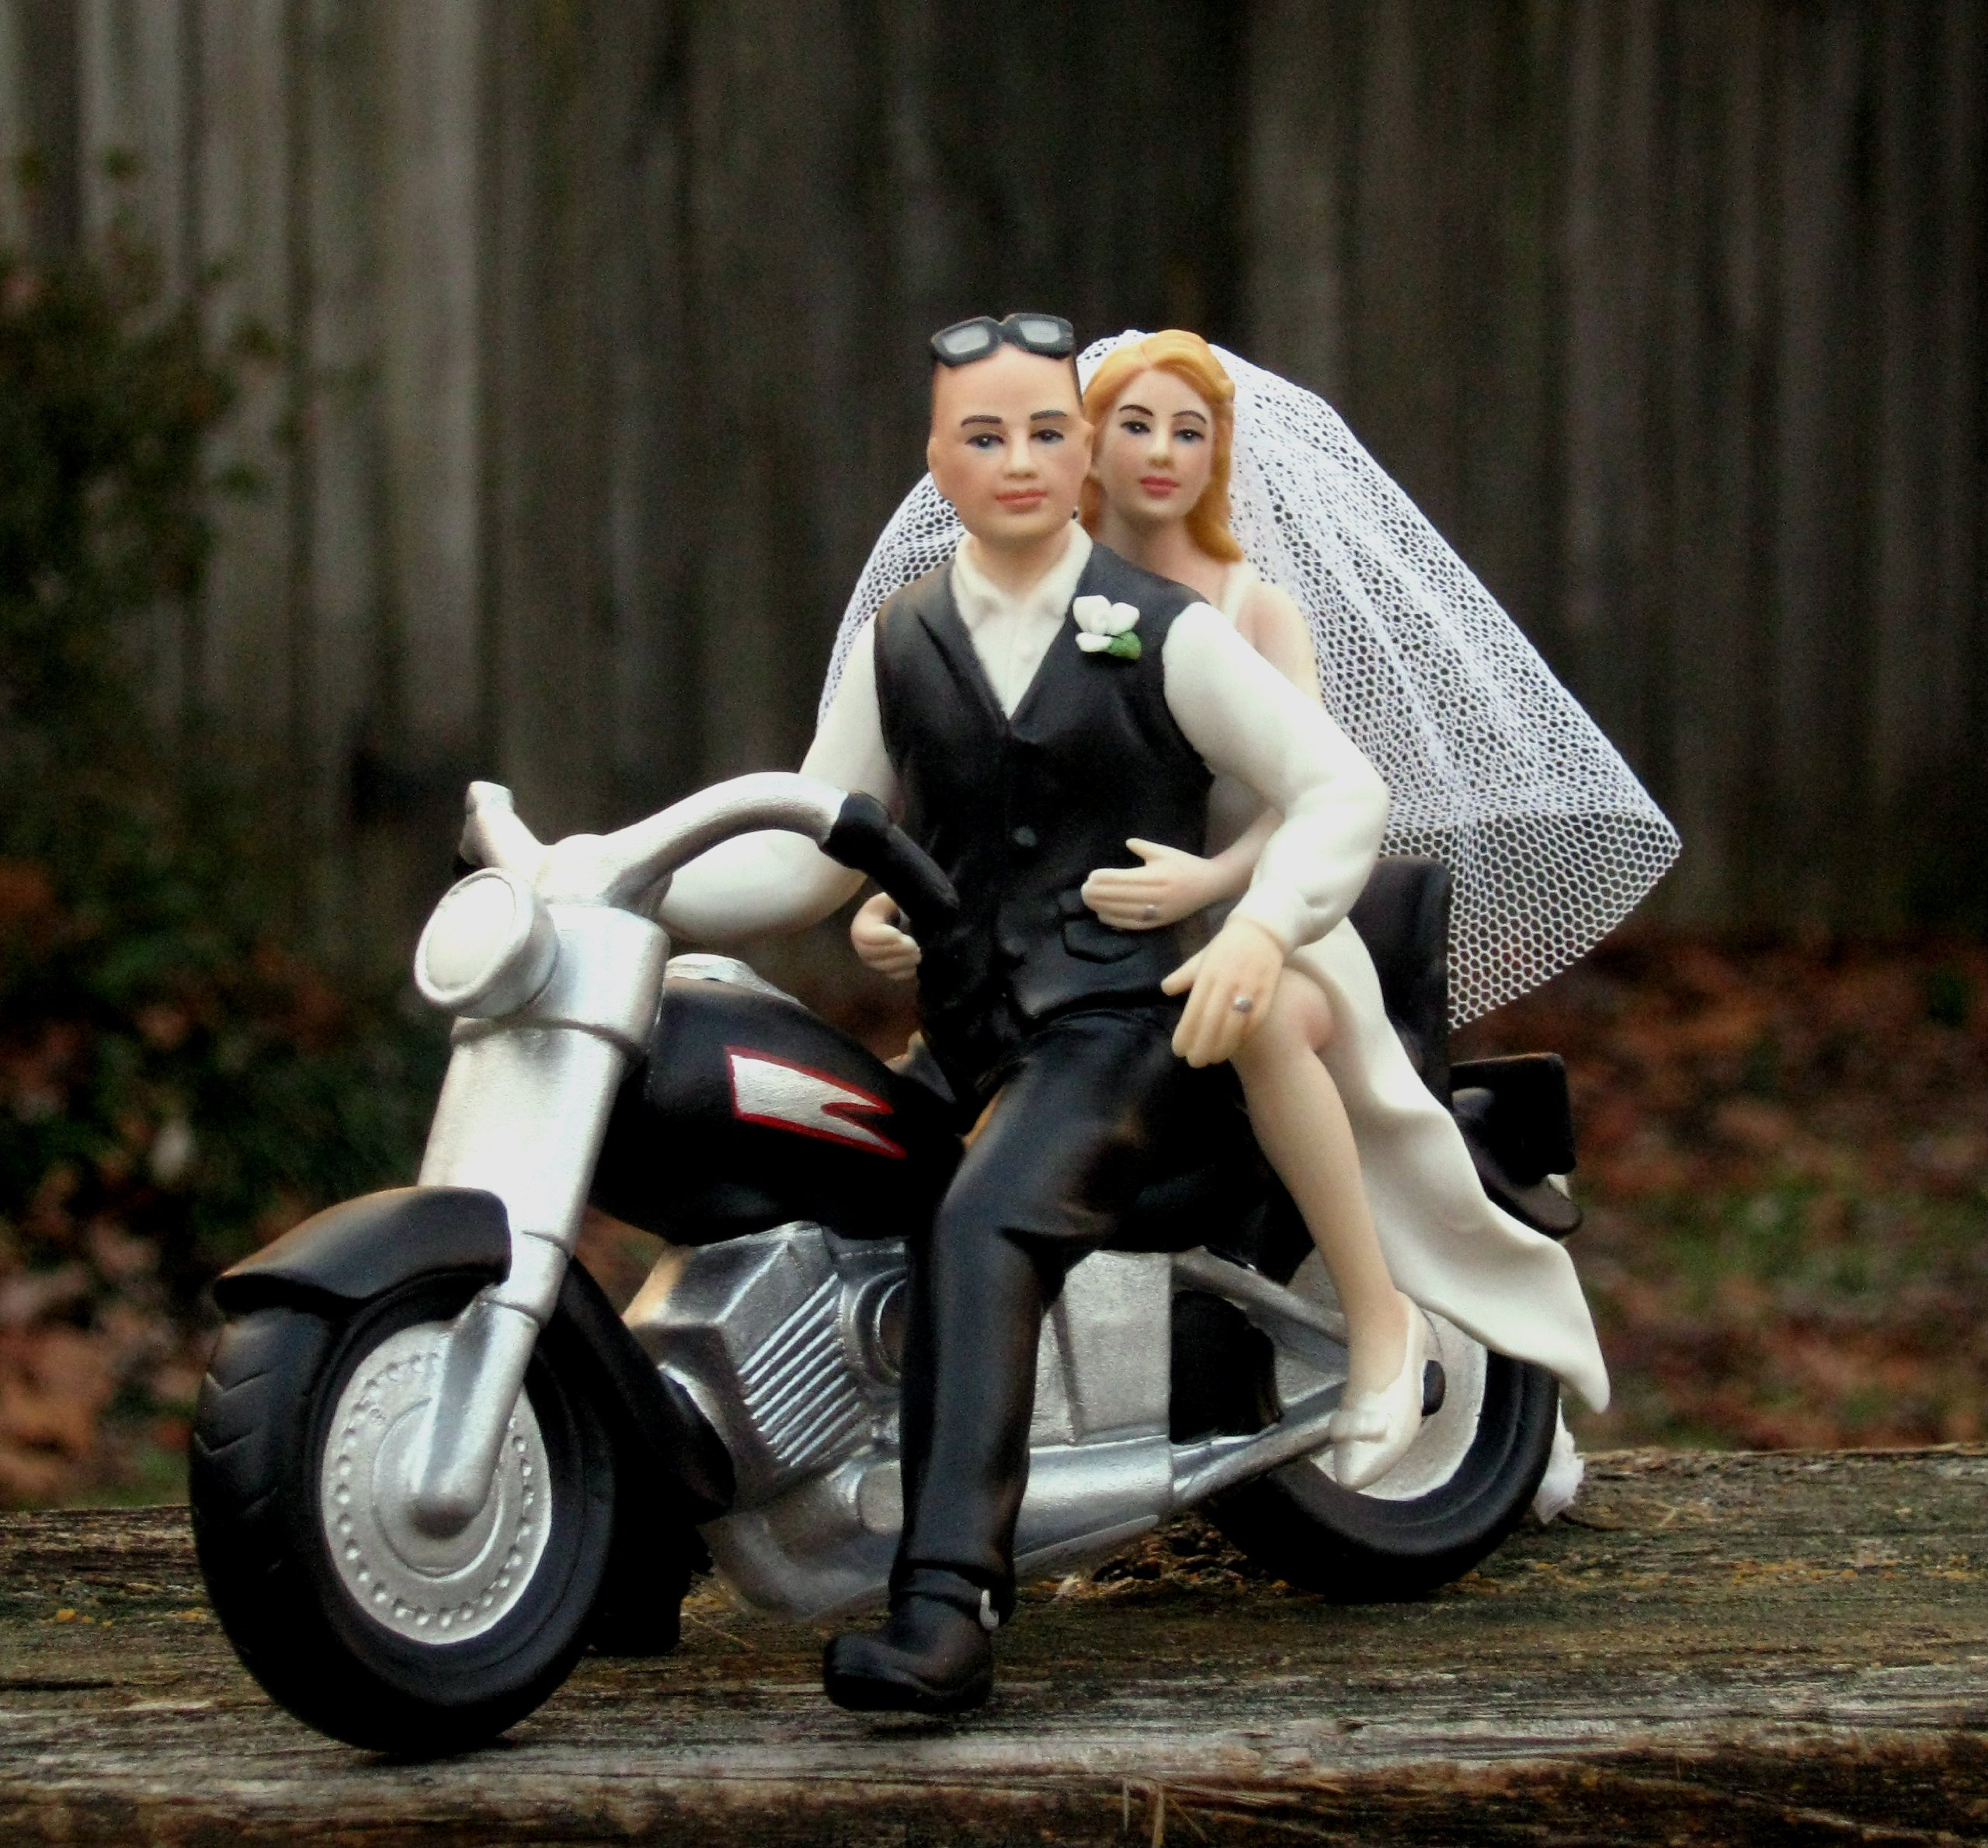 Motorcycle Cake Topper BALD Groom -- By Magical Day by Magical Day (Image #2)